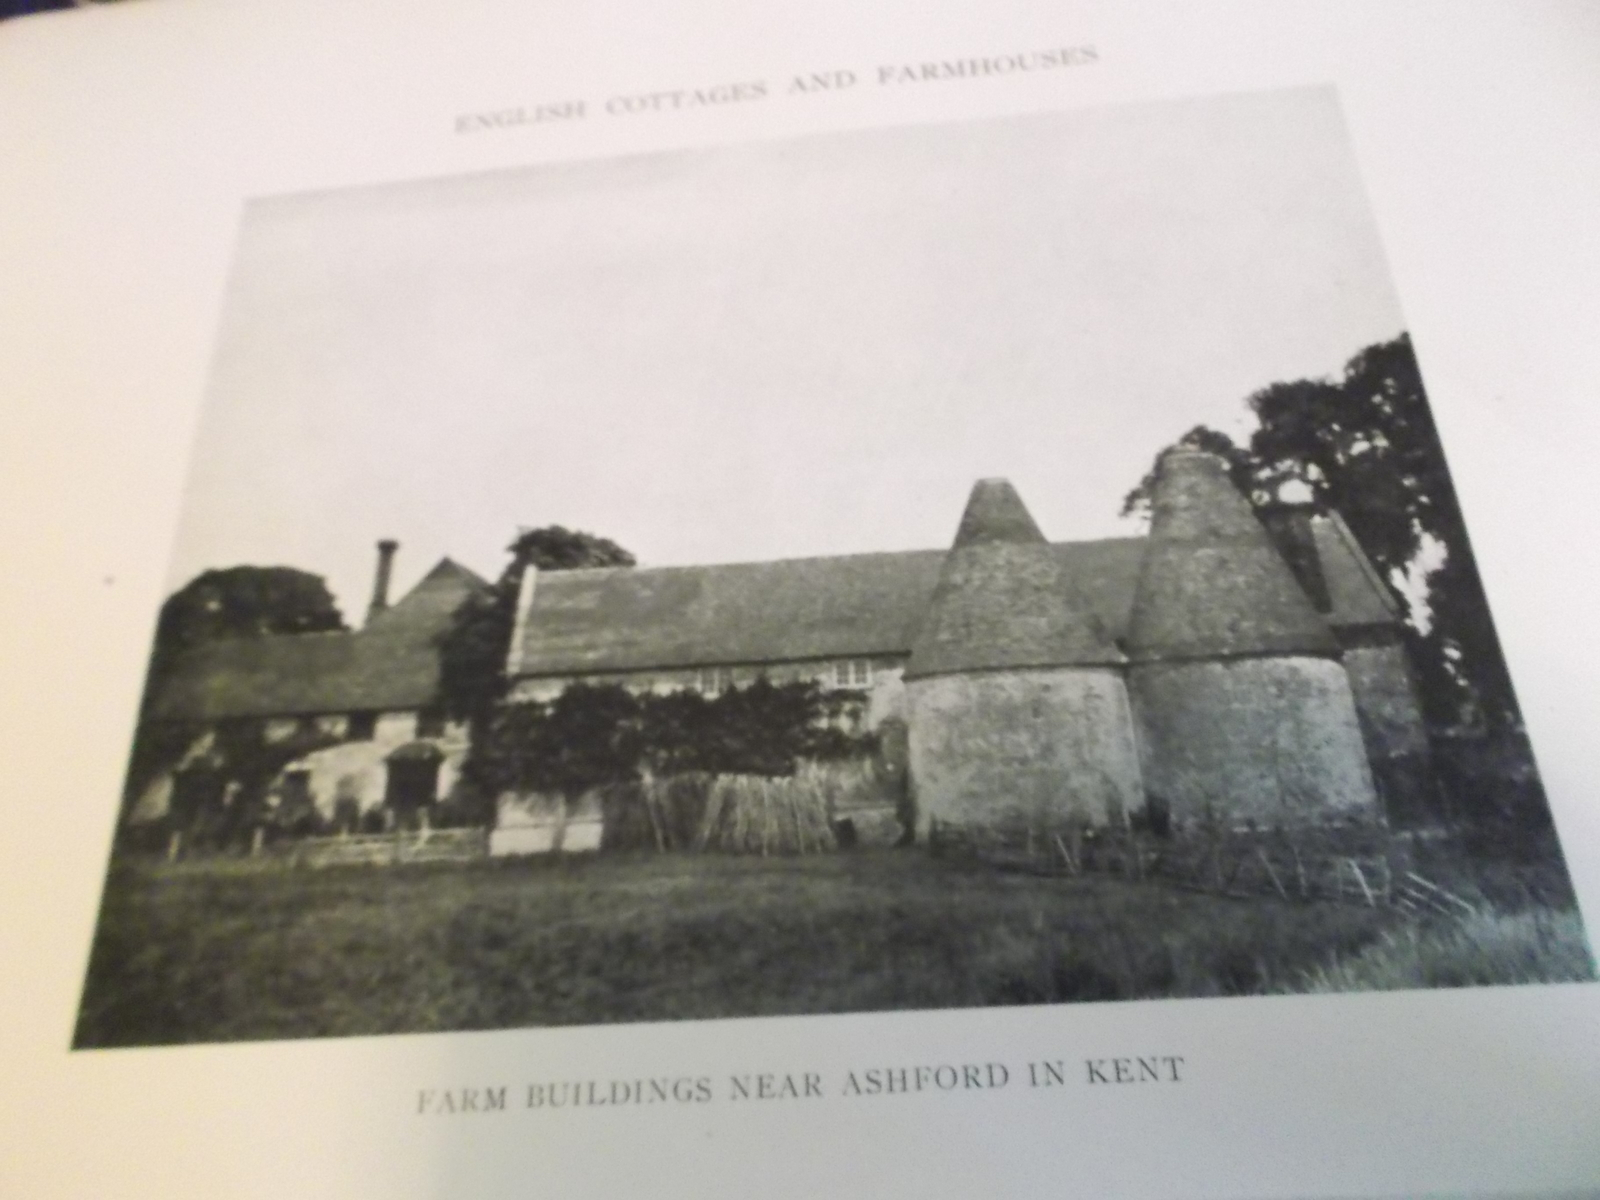 Cottages, Farmhouses and Other Minor Buildings in England pub 1923